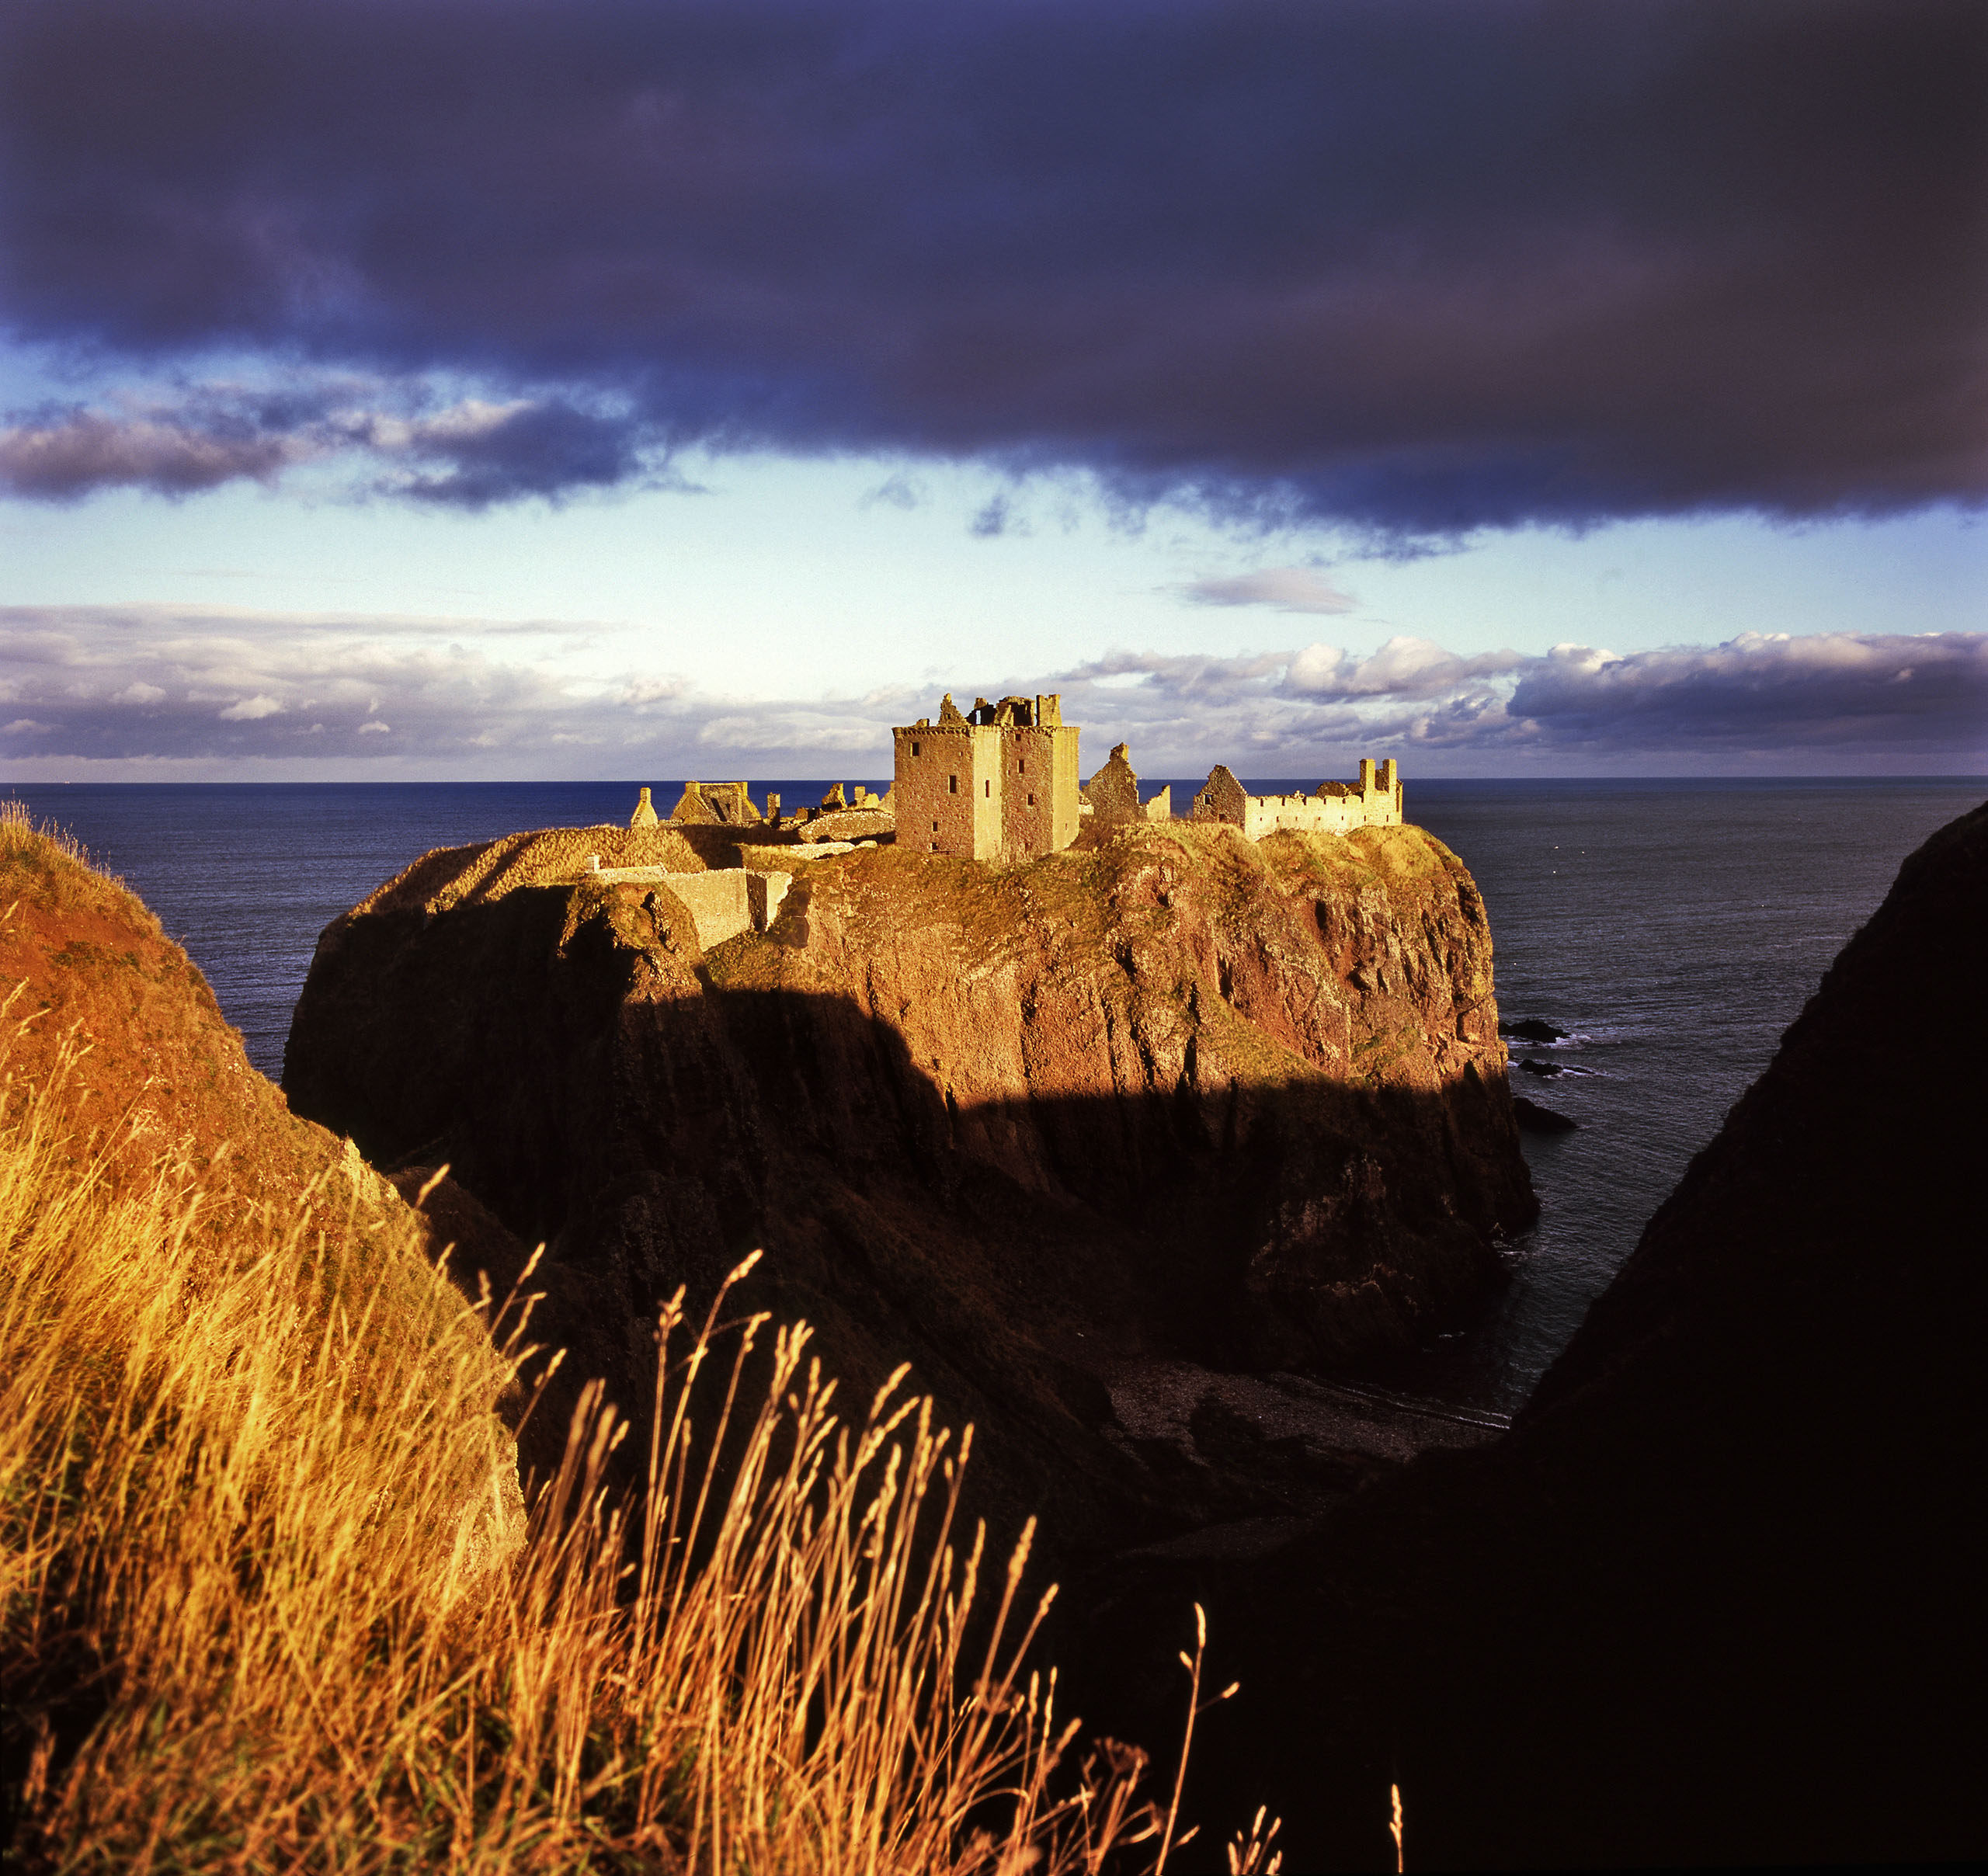 Medieval fortress Dunottar castle was home to one of the most powerful families in Scotland. The castle lies isolated off the coast near Stonehaven, Aberdeenshire where over centuries it has protected the likes of William Wallace, Mary Queen of Scots and countless tourists. The site was occupied since the Picts (this land's original settlers) from 5000BC-700AD (Dun is gaelic word for hill fort). In the 5th century the site was used as a Christian church by St Ninian who brought Christianity to the Picts. The castle is owned by Historic Scotland, a charity in the wider heritage sector who own 2.5% of Scottish land. Photo by Kieran Dodds.